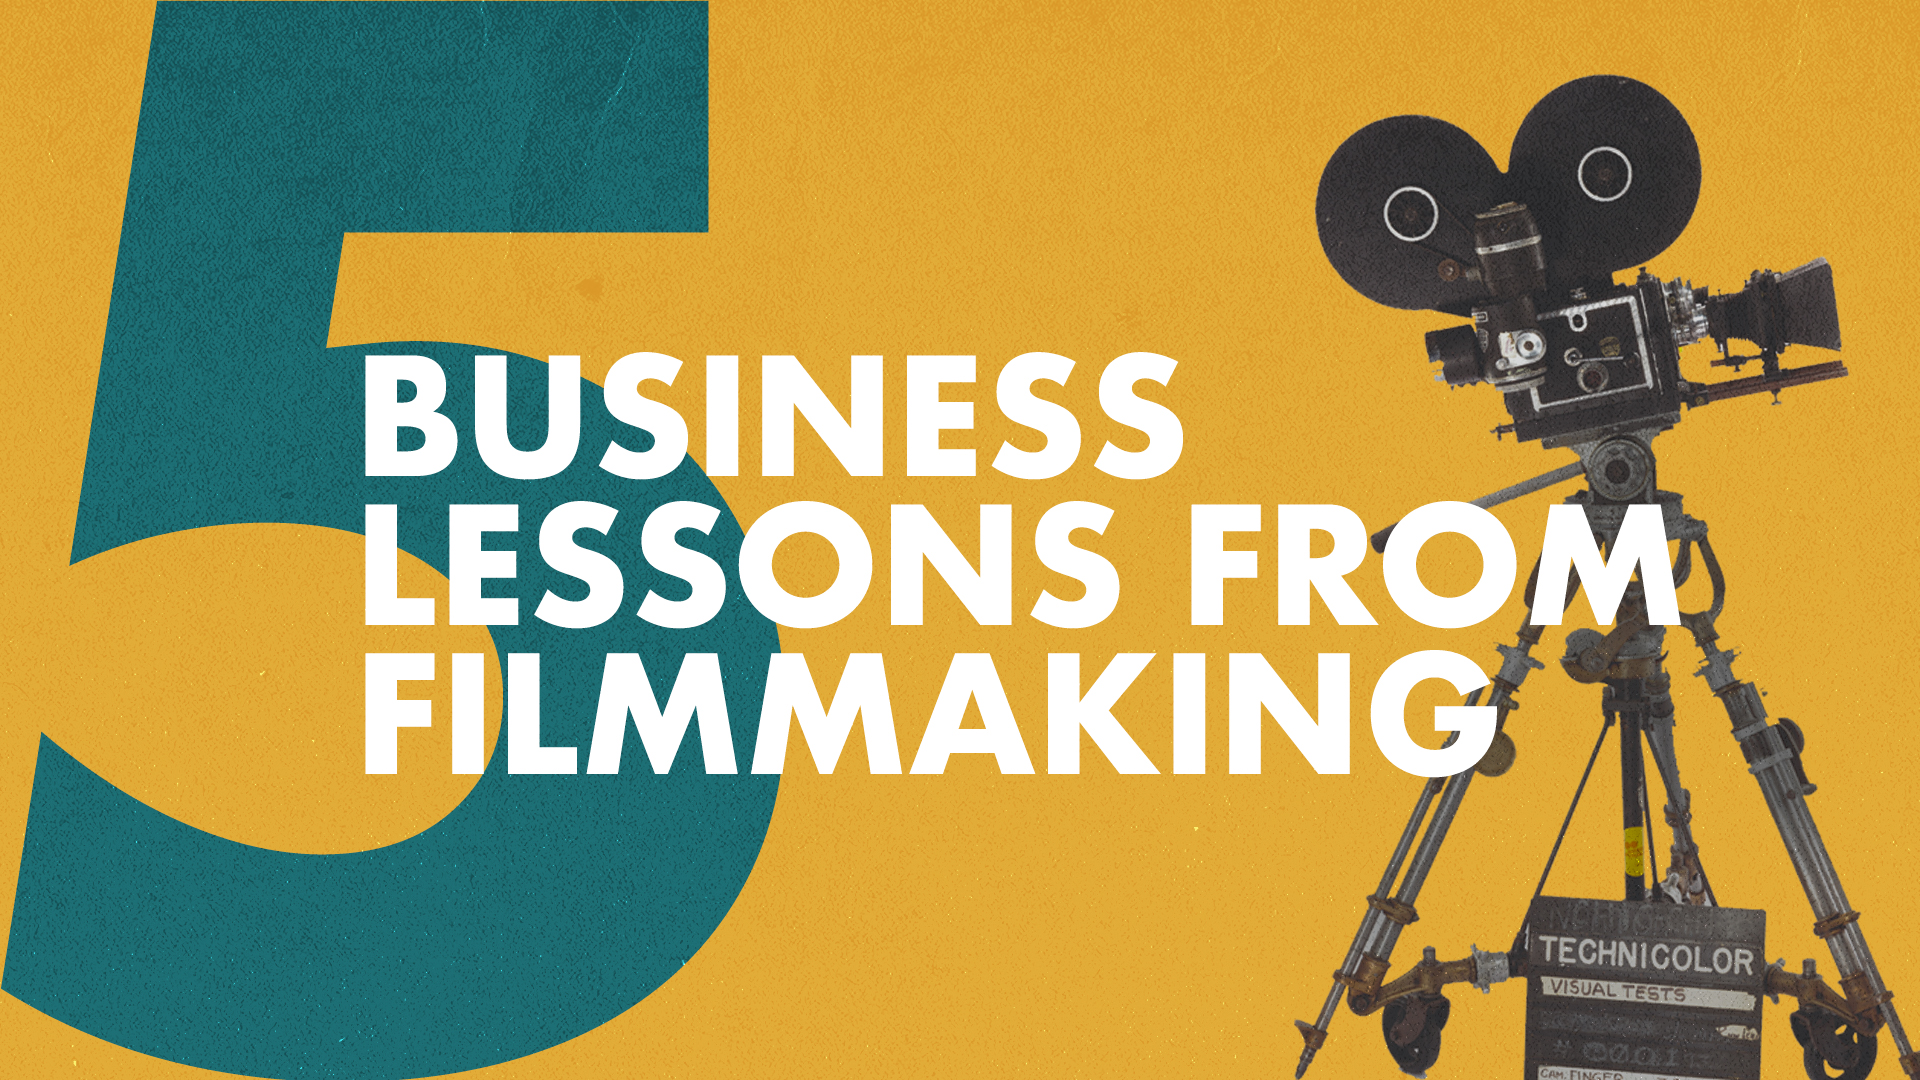 5 Business Lessons Learnt from Filmmaking